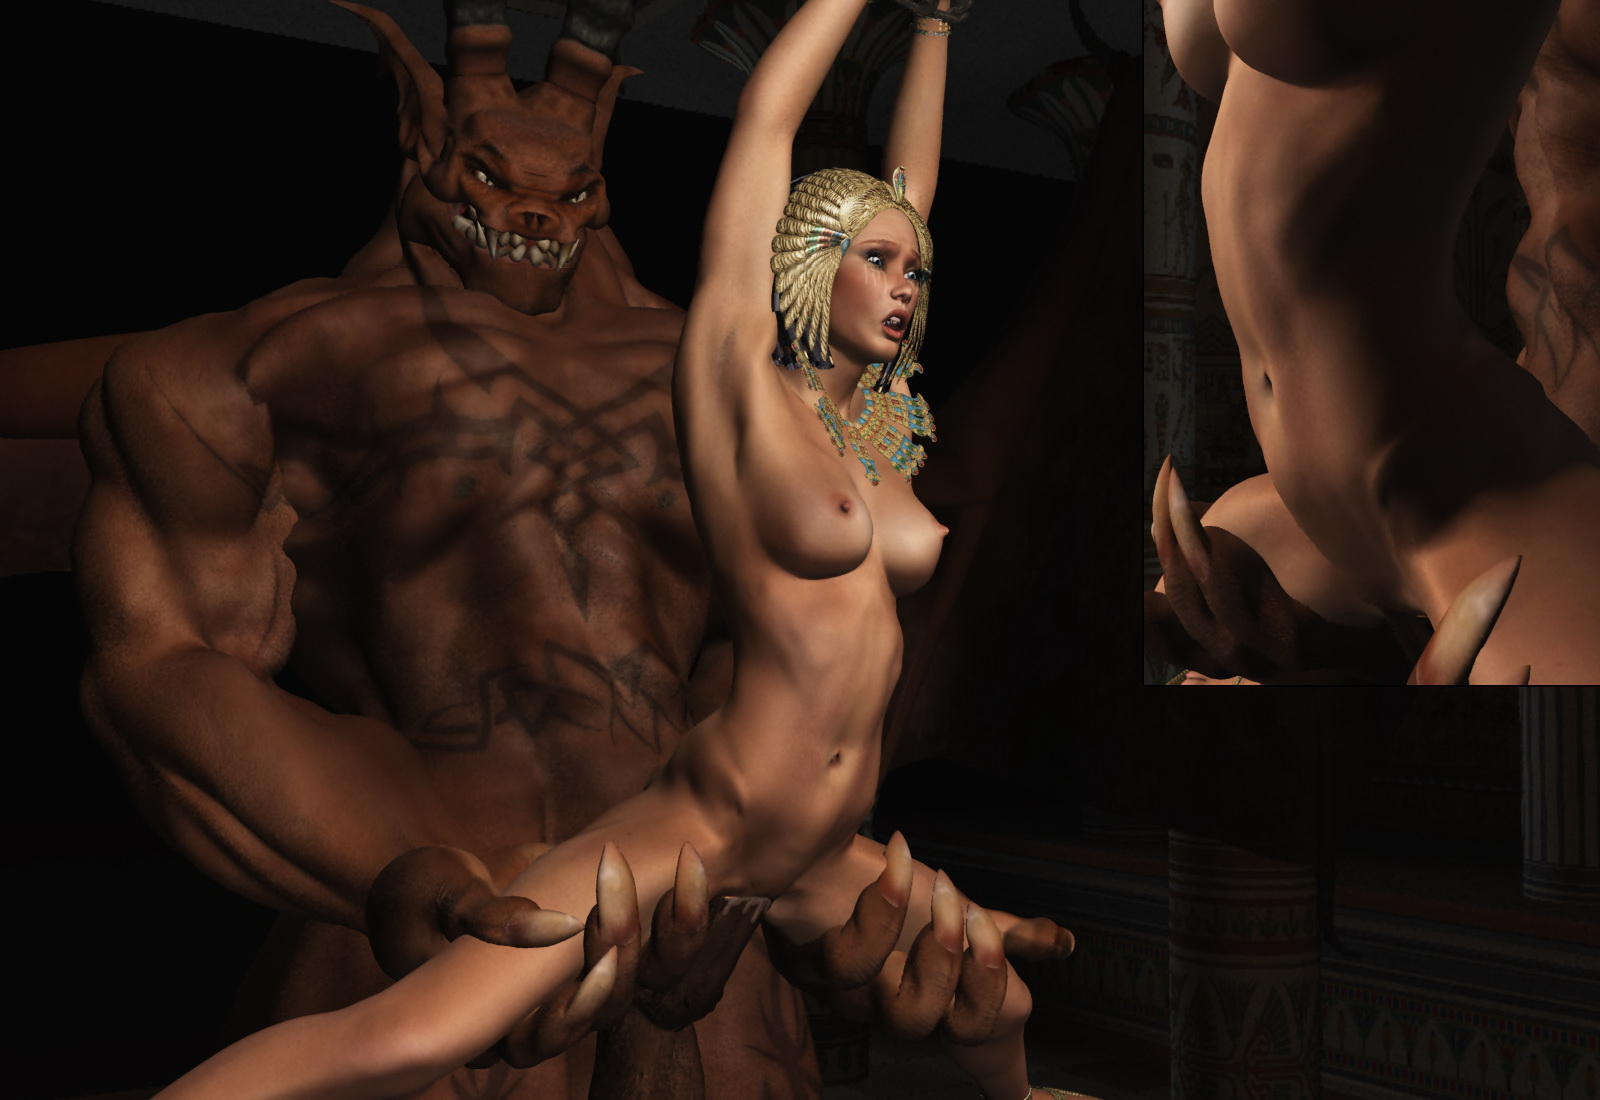 Wallpaper demon nude 3d hardcore reality actress